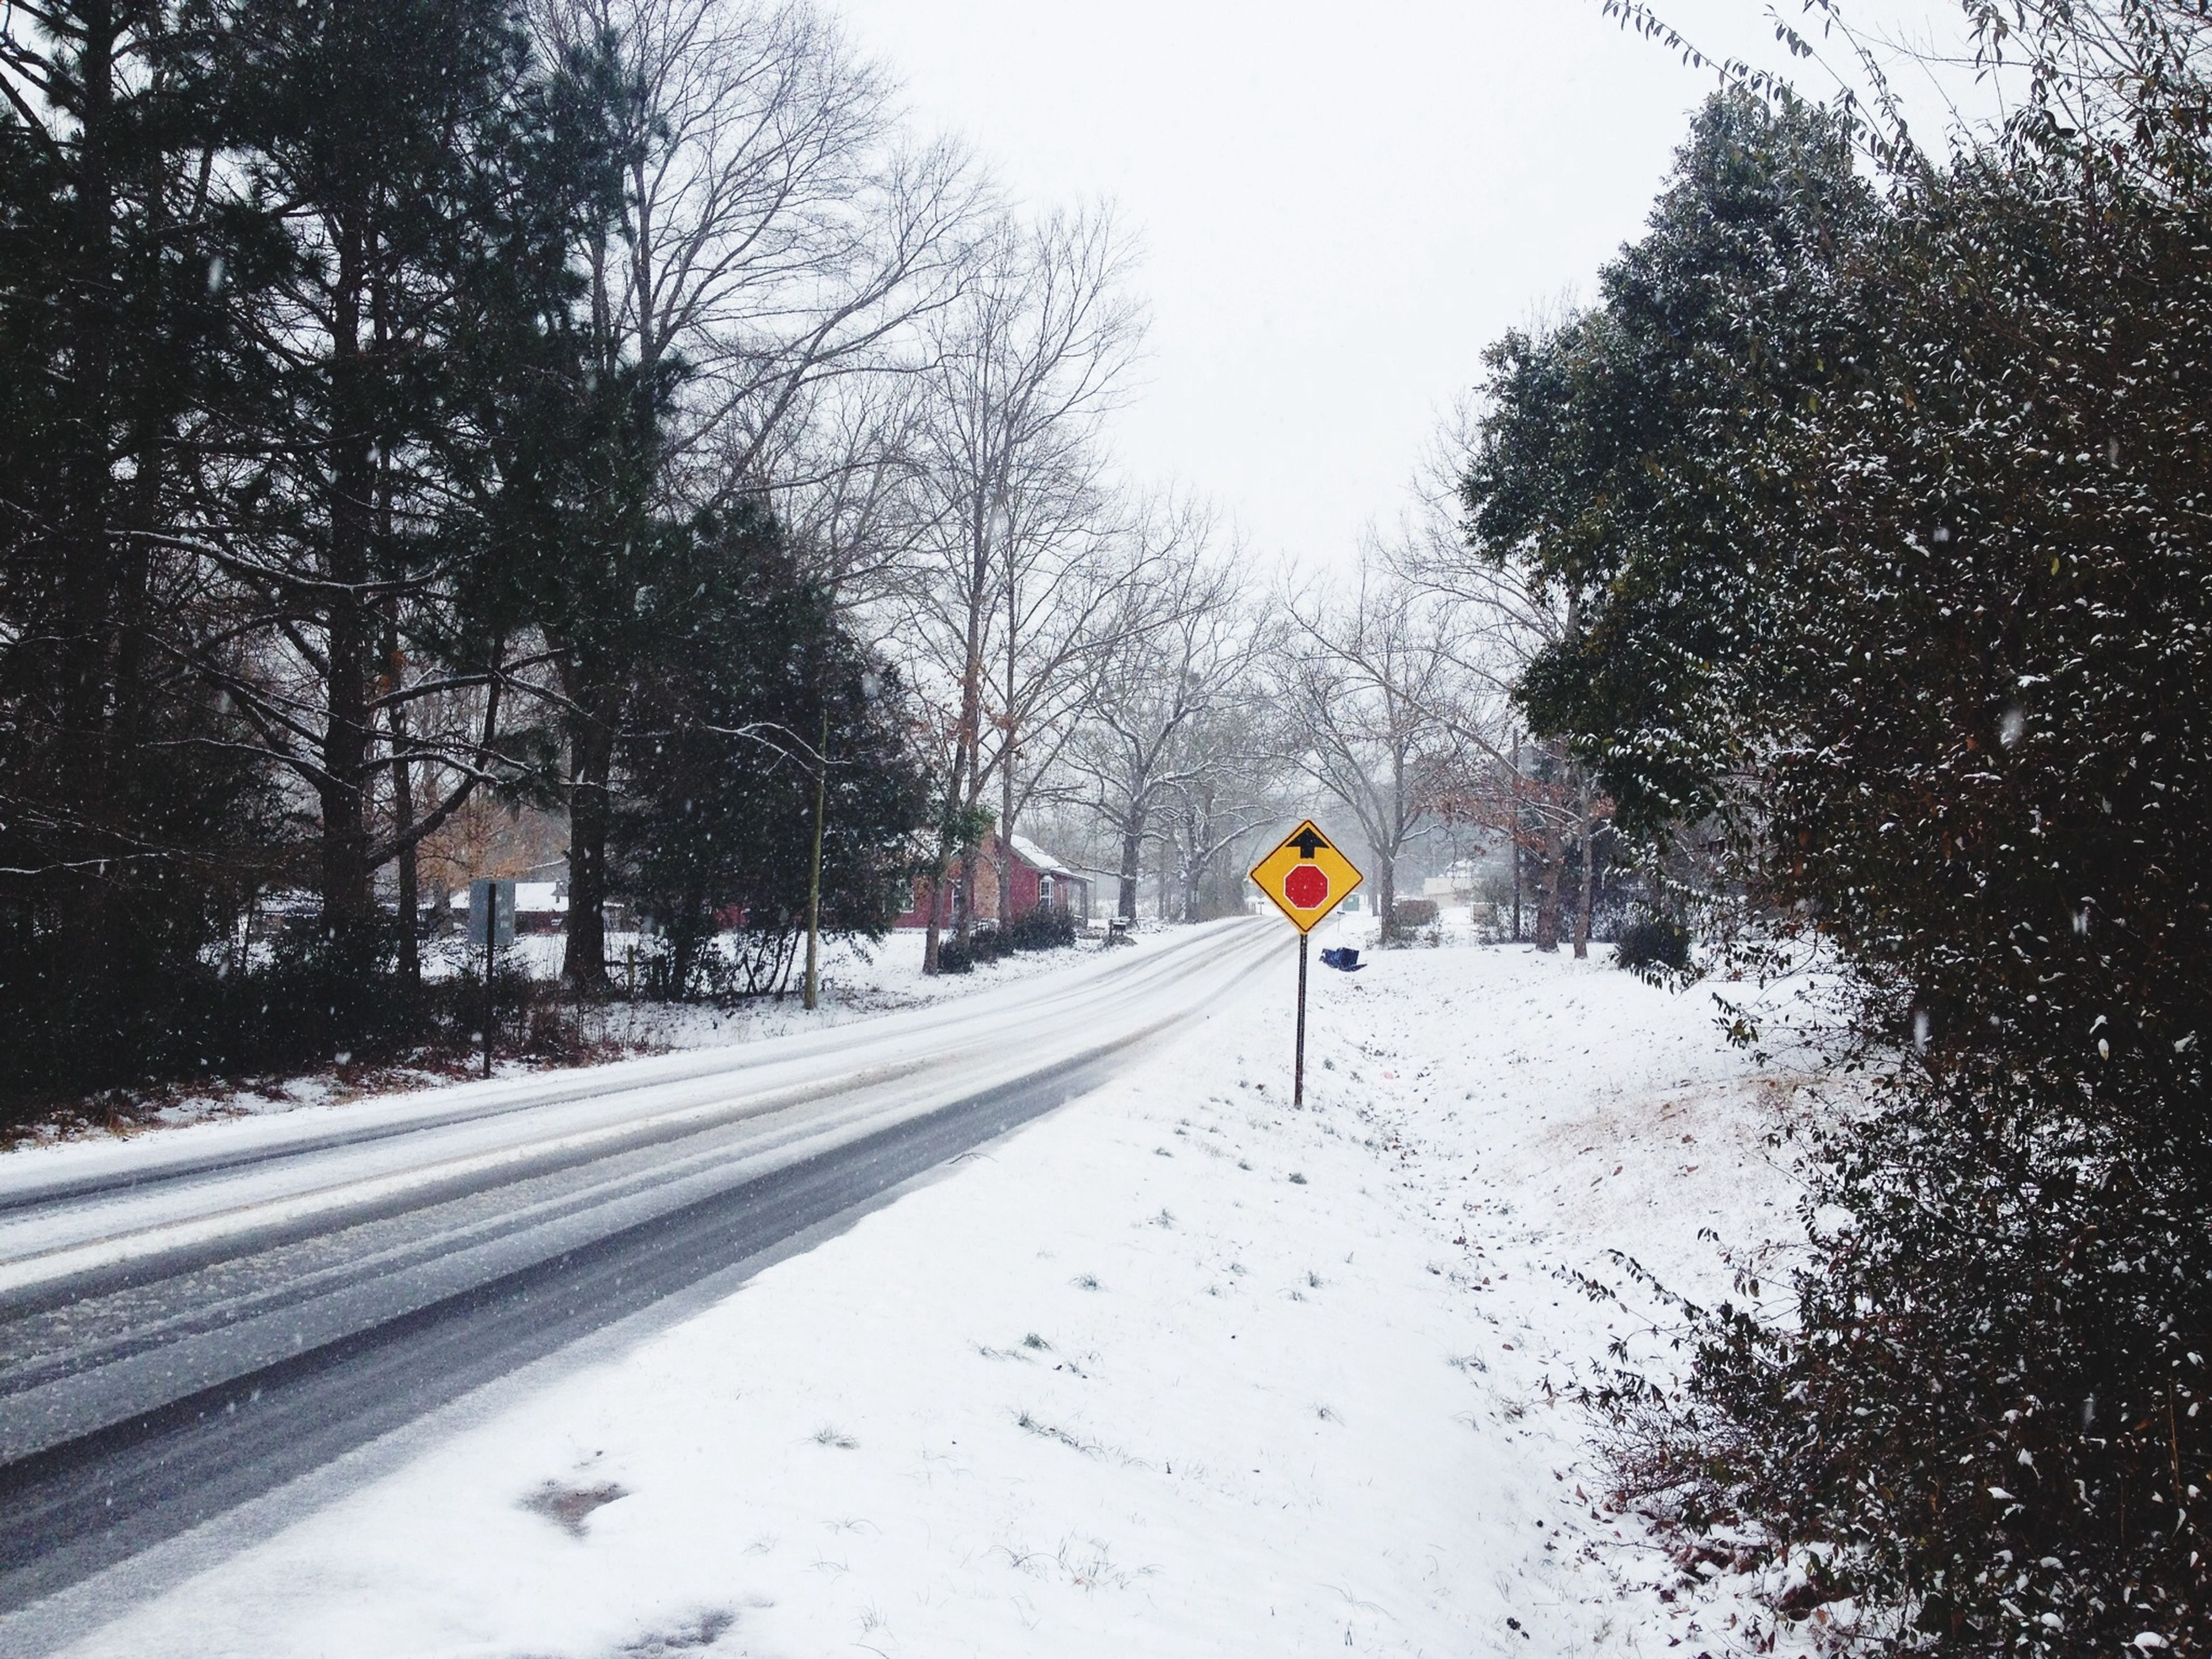 snow, winter, cold temperature, tree, season, weather, the way forward, full length, transportation, walking, bare tree, lifestyles, leisure activity, rear view, men, unrecognizable person, road, nature